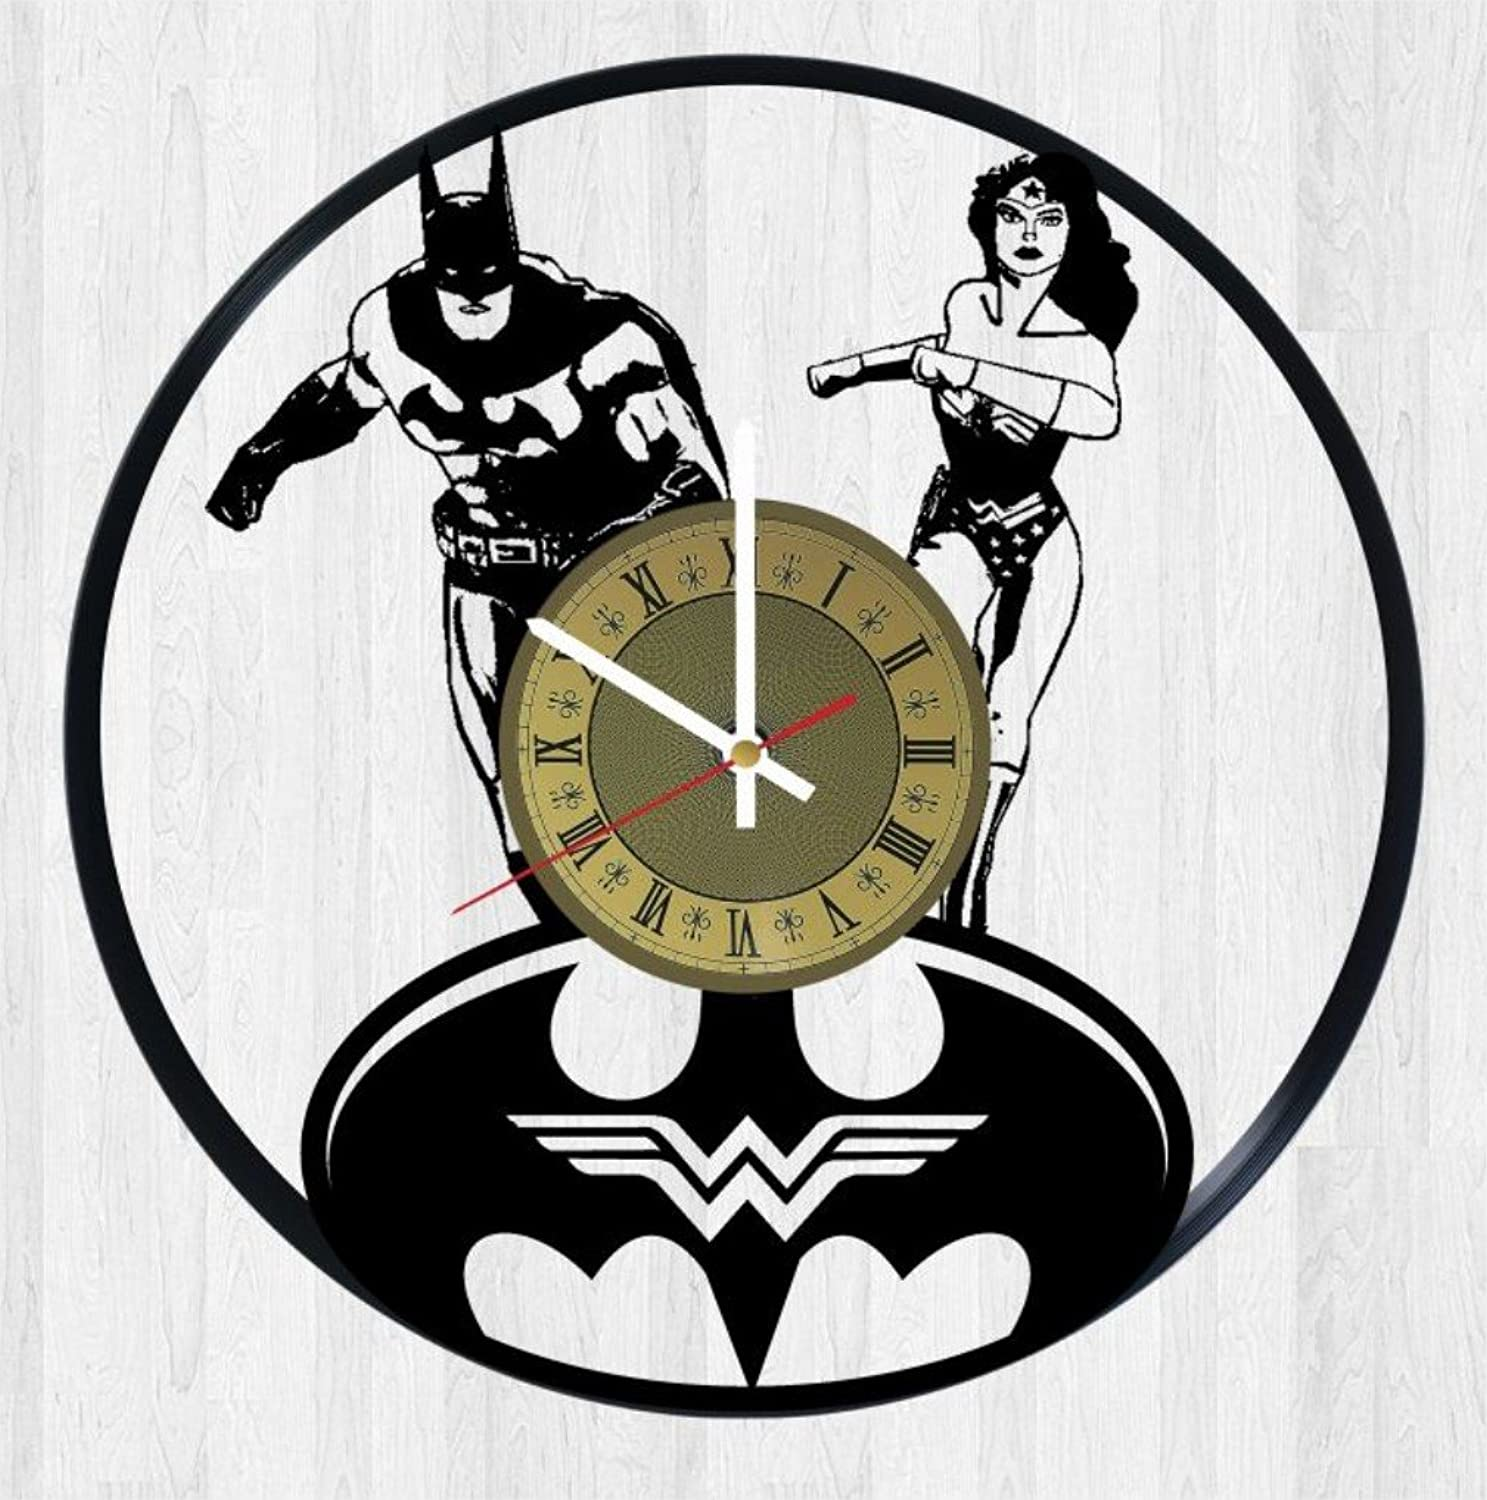 Batman and Wonder Woman Vinyl Wall Clock Great Gift for Men, Women, Kids, Girls and Boys, Birthday, Christmas Beautiful Home Decor - Unique Design That Made Out of Vinyl LP Record